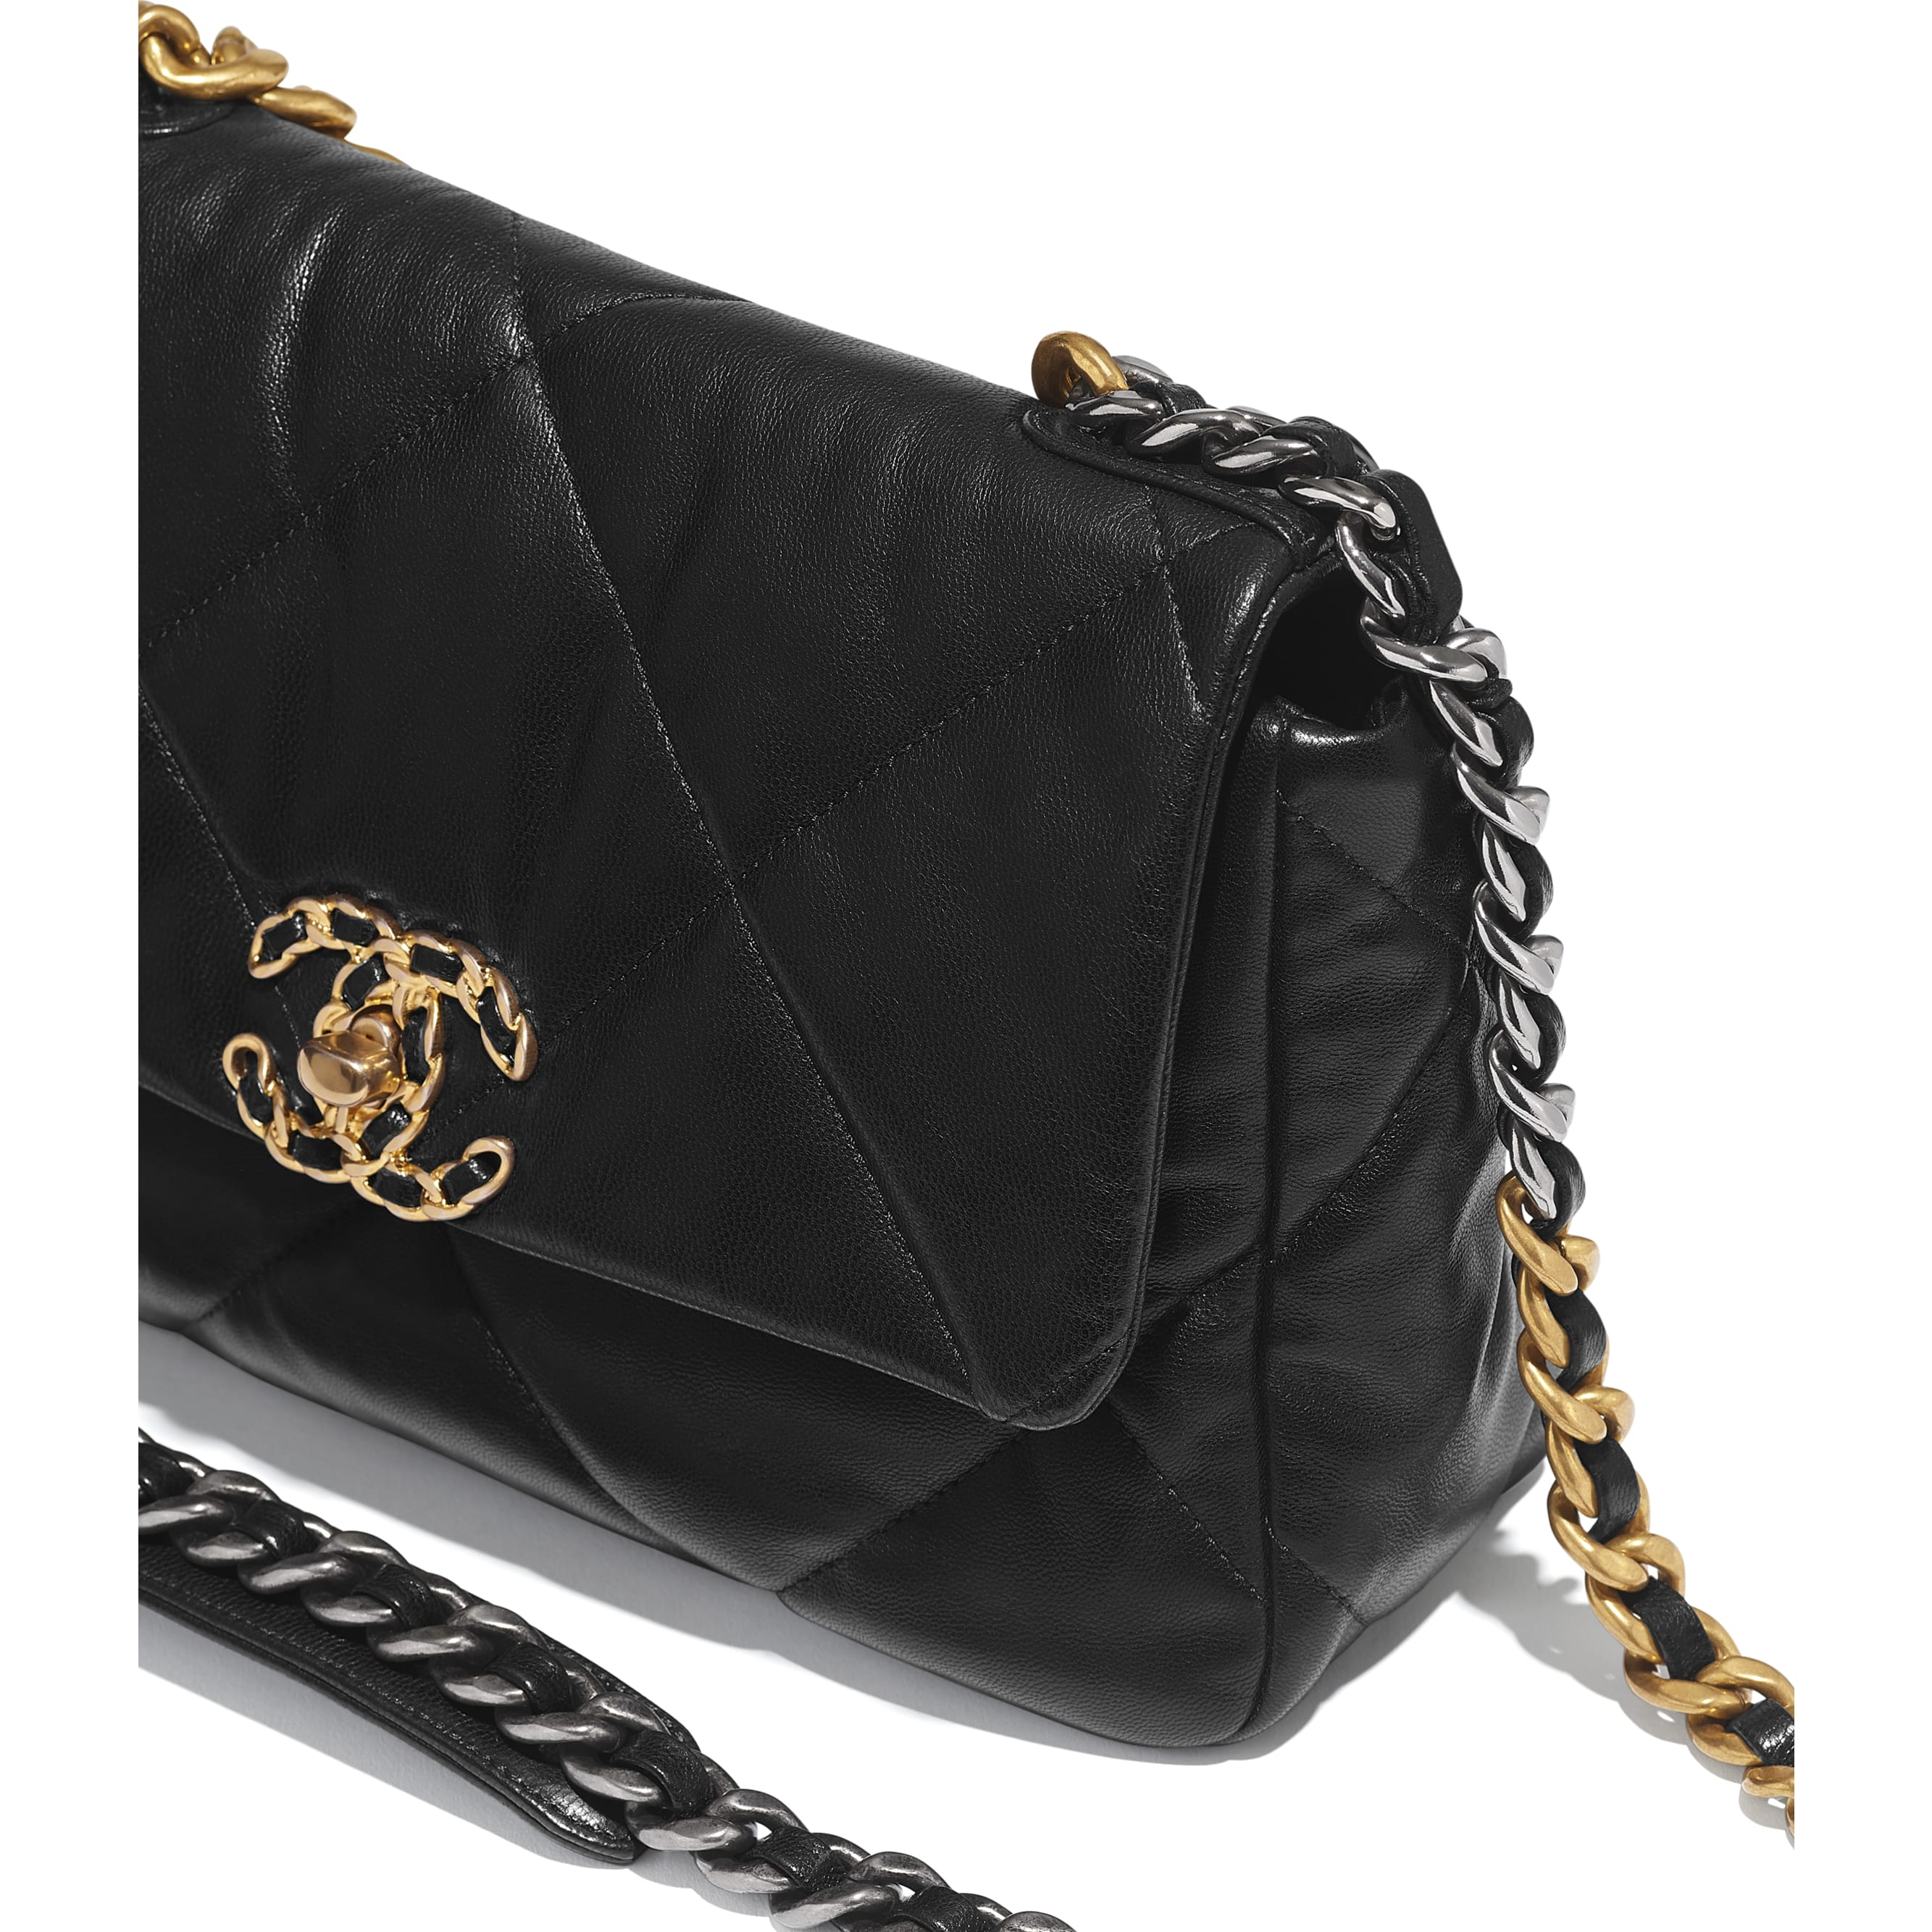 CHANEL 19 Flap Bag - Black - Lambskin, Gold-Tone, Silver-Tone & Ruthenium-Finish Metal - Extra view - see standard sized version